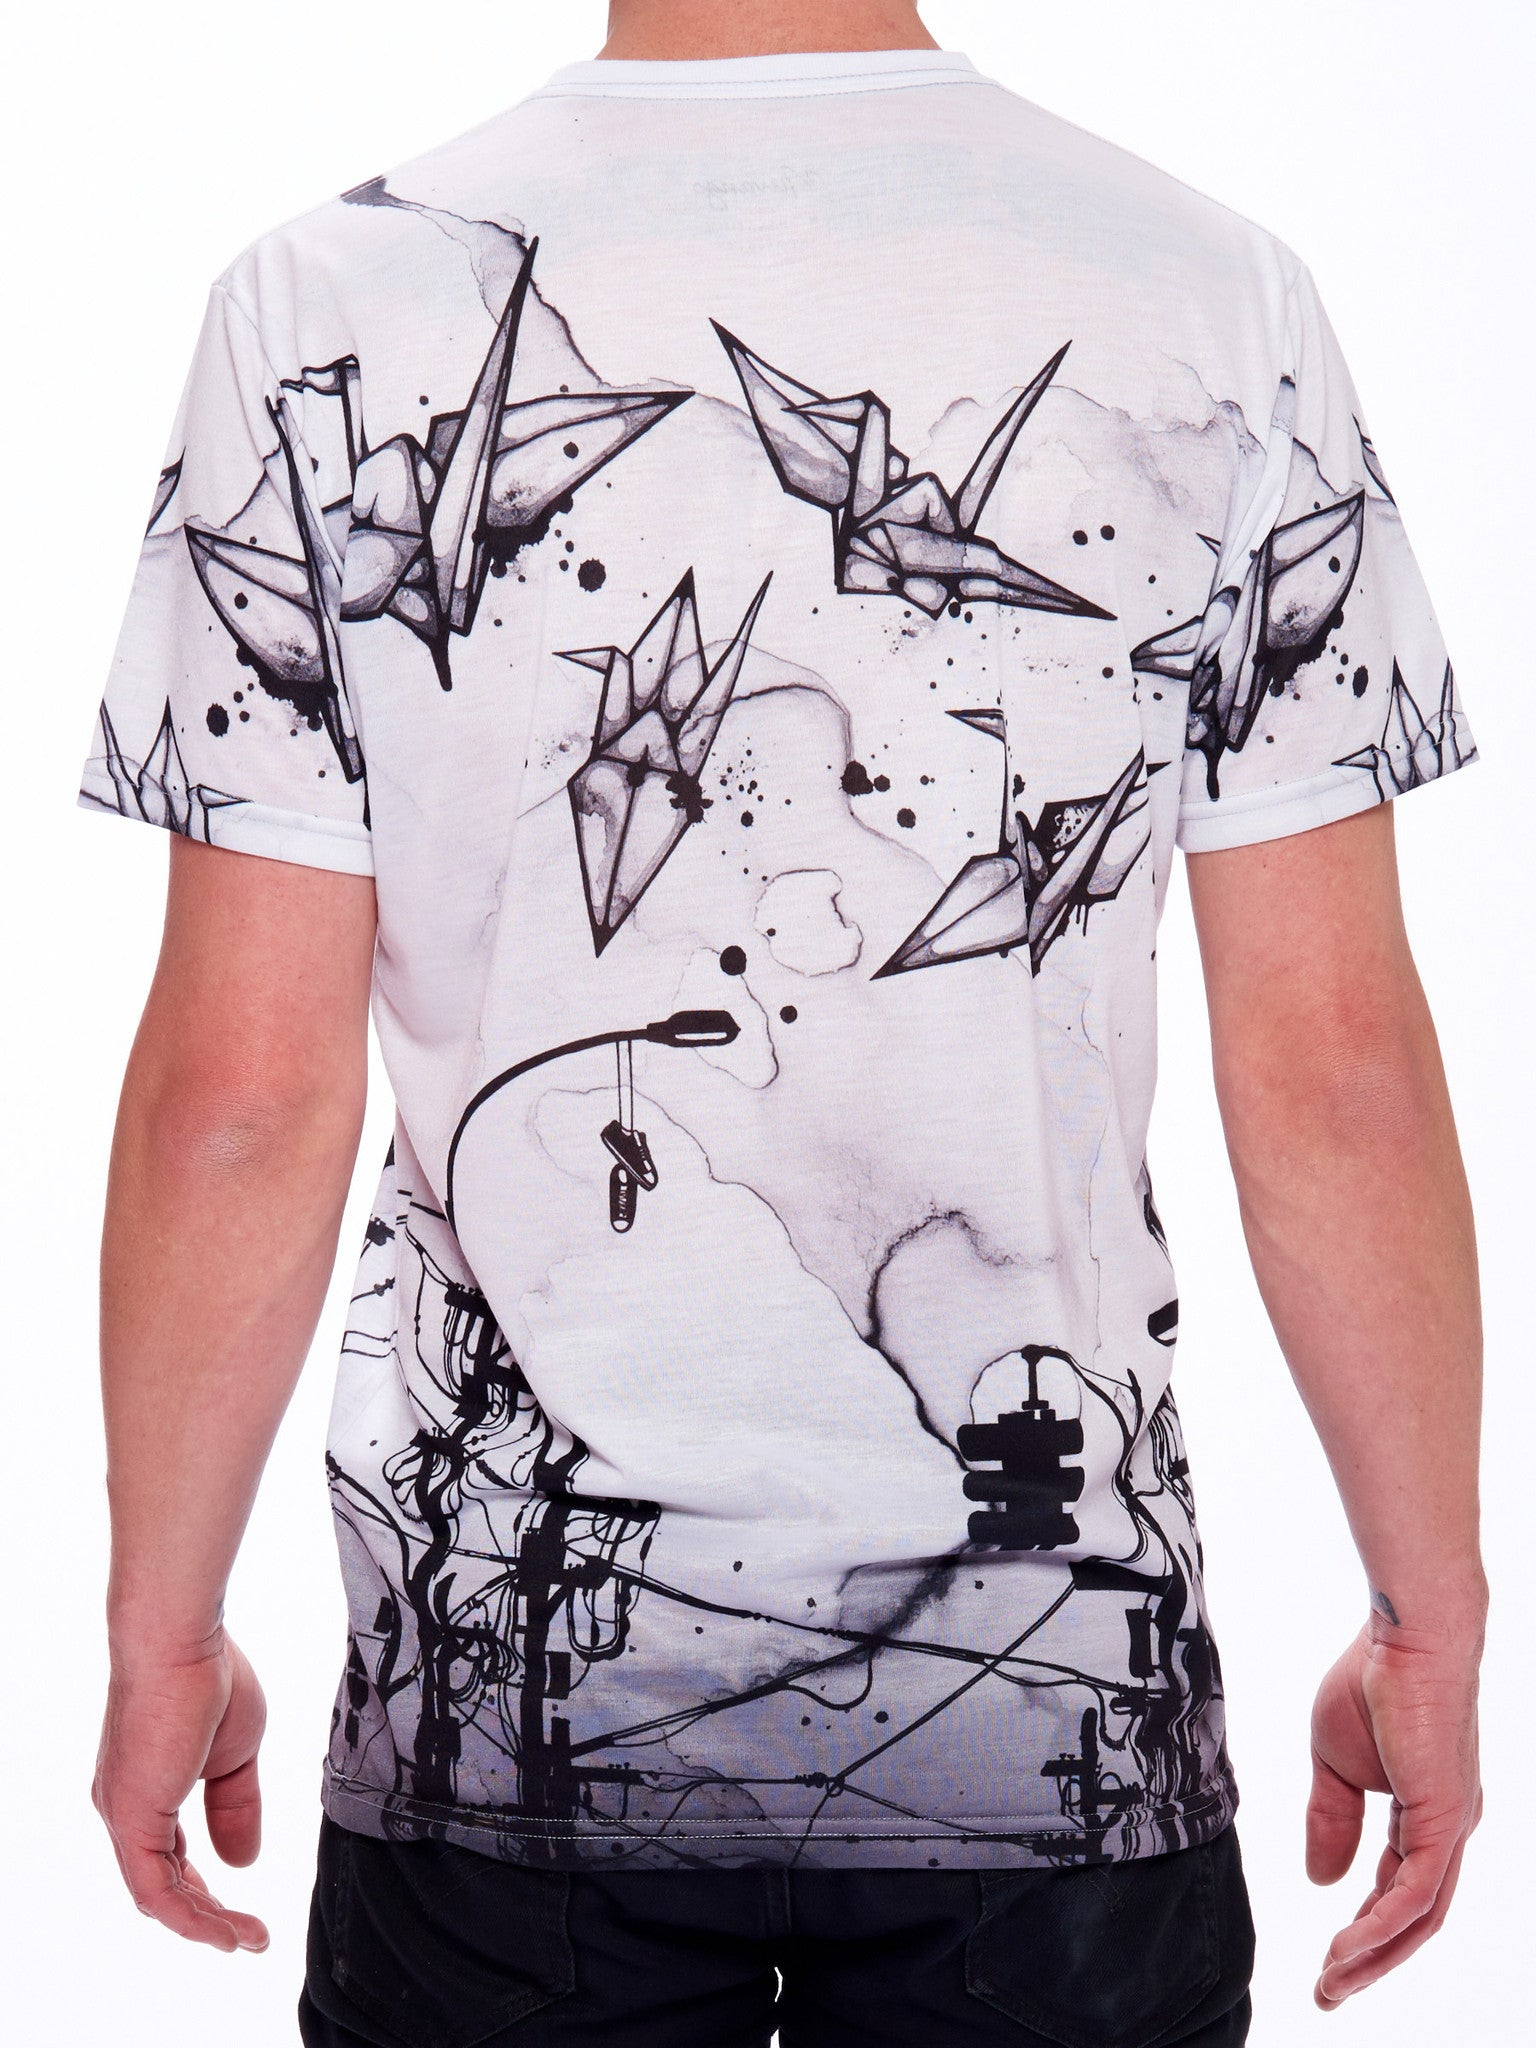 Cable Cranes Men's Classic T-Shirt